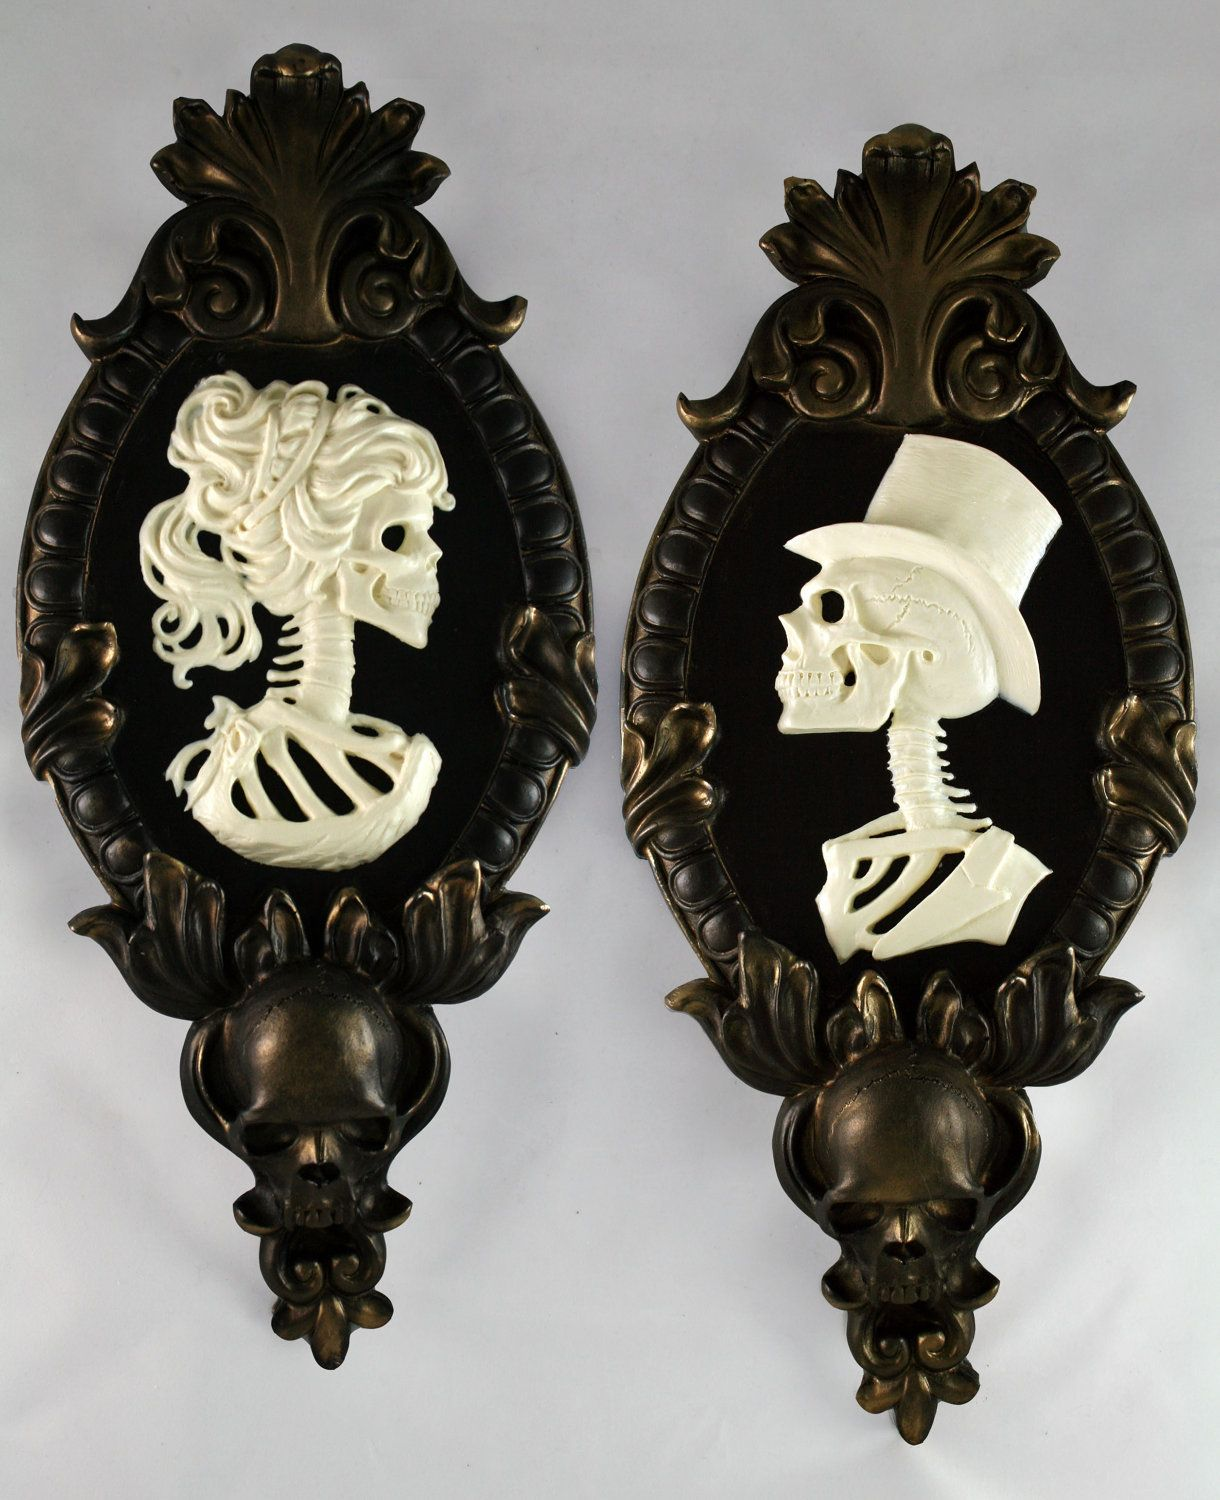 Skull Bedroom Decor Gothic Victorian Lady Skeleton Cameo Bone White In Gold Tone Frame